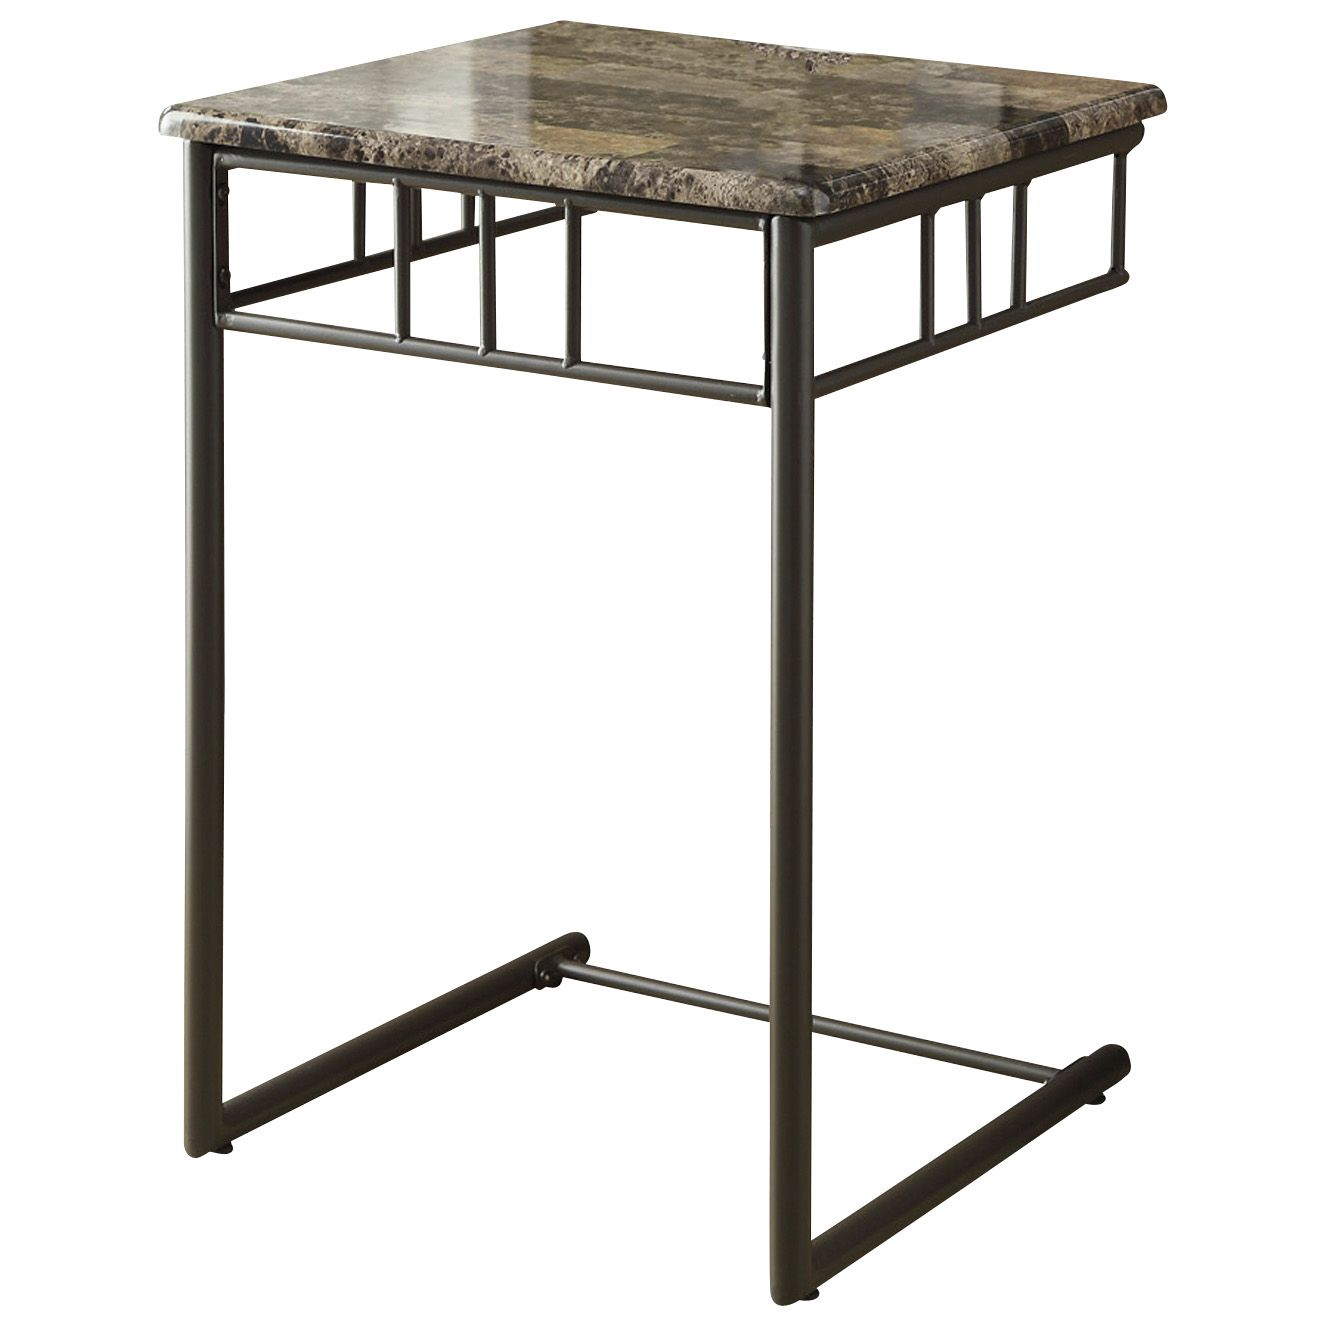 fingerhut monarch marble metal snack table accent cappuccino bronze tap zoom frame side home decor trends round wood and outdoor furniture melbourne fern stand uttermost art